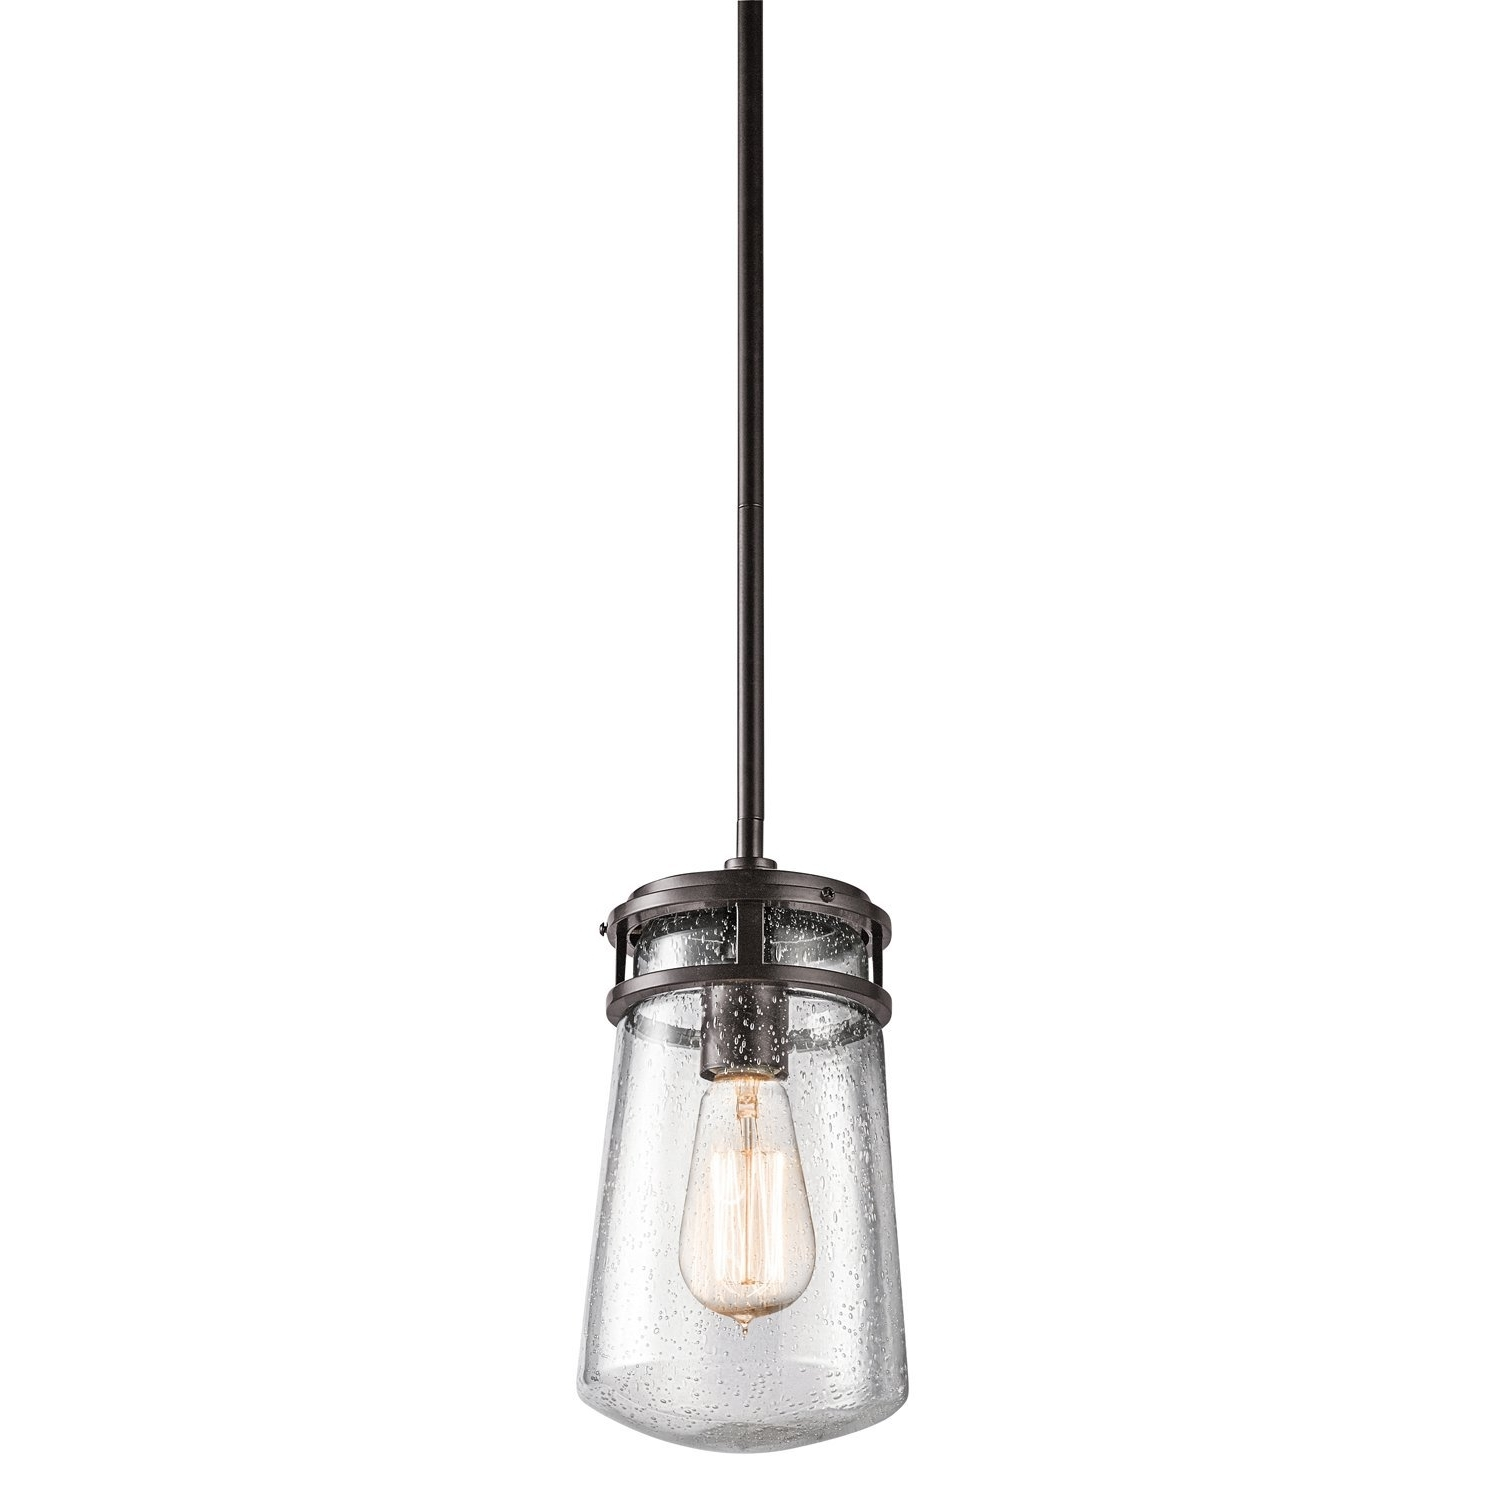 Contemporary Outdoor Pendant Lighting Inside Fashionable Ceiling Fans Hanging Light Pendants Exterior Pendant Lights (View 3 of 20)